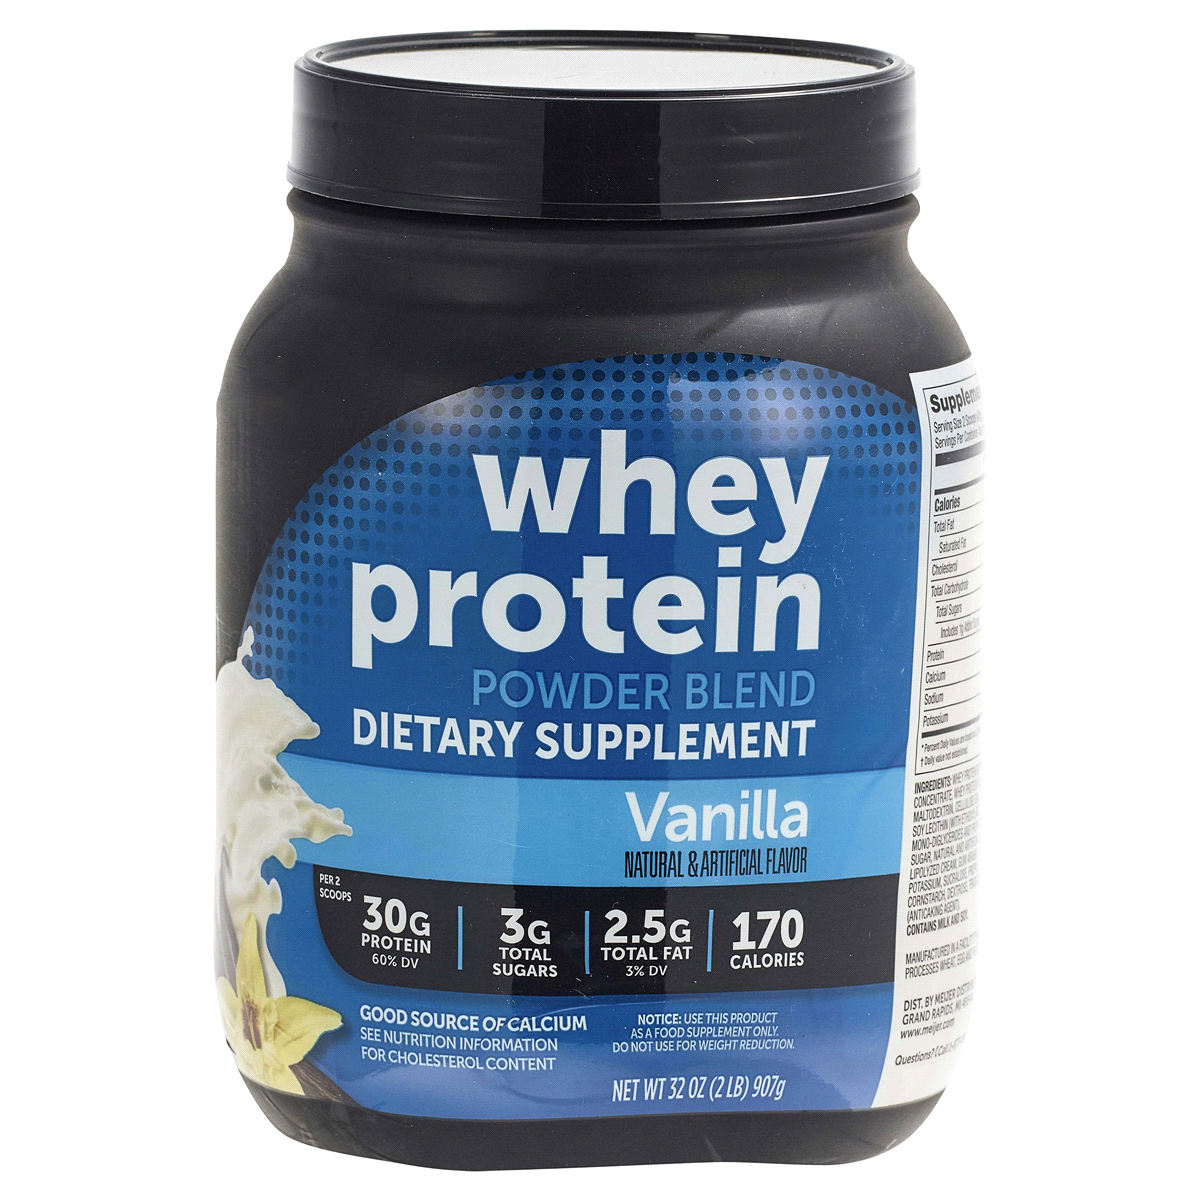 Whey Protein Supplement Sporte rnährung Shake trink fertig Custom ized Manufacture OEM